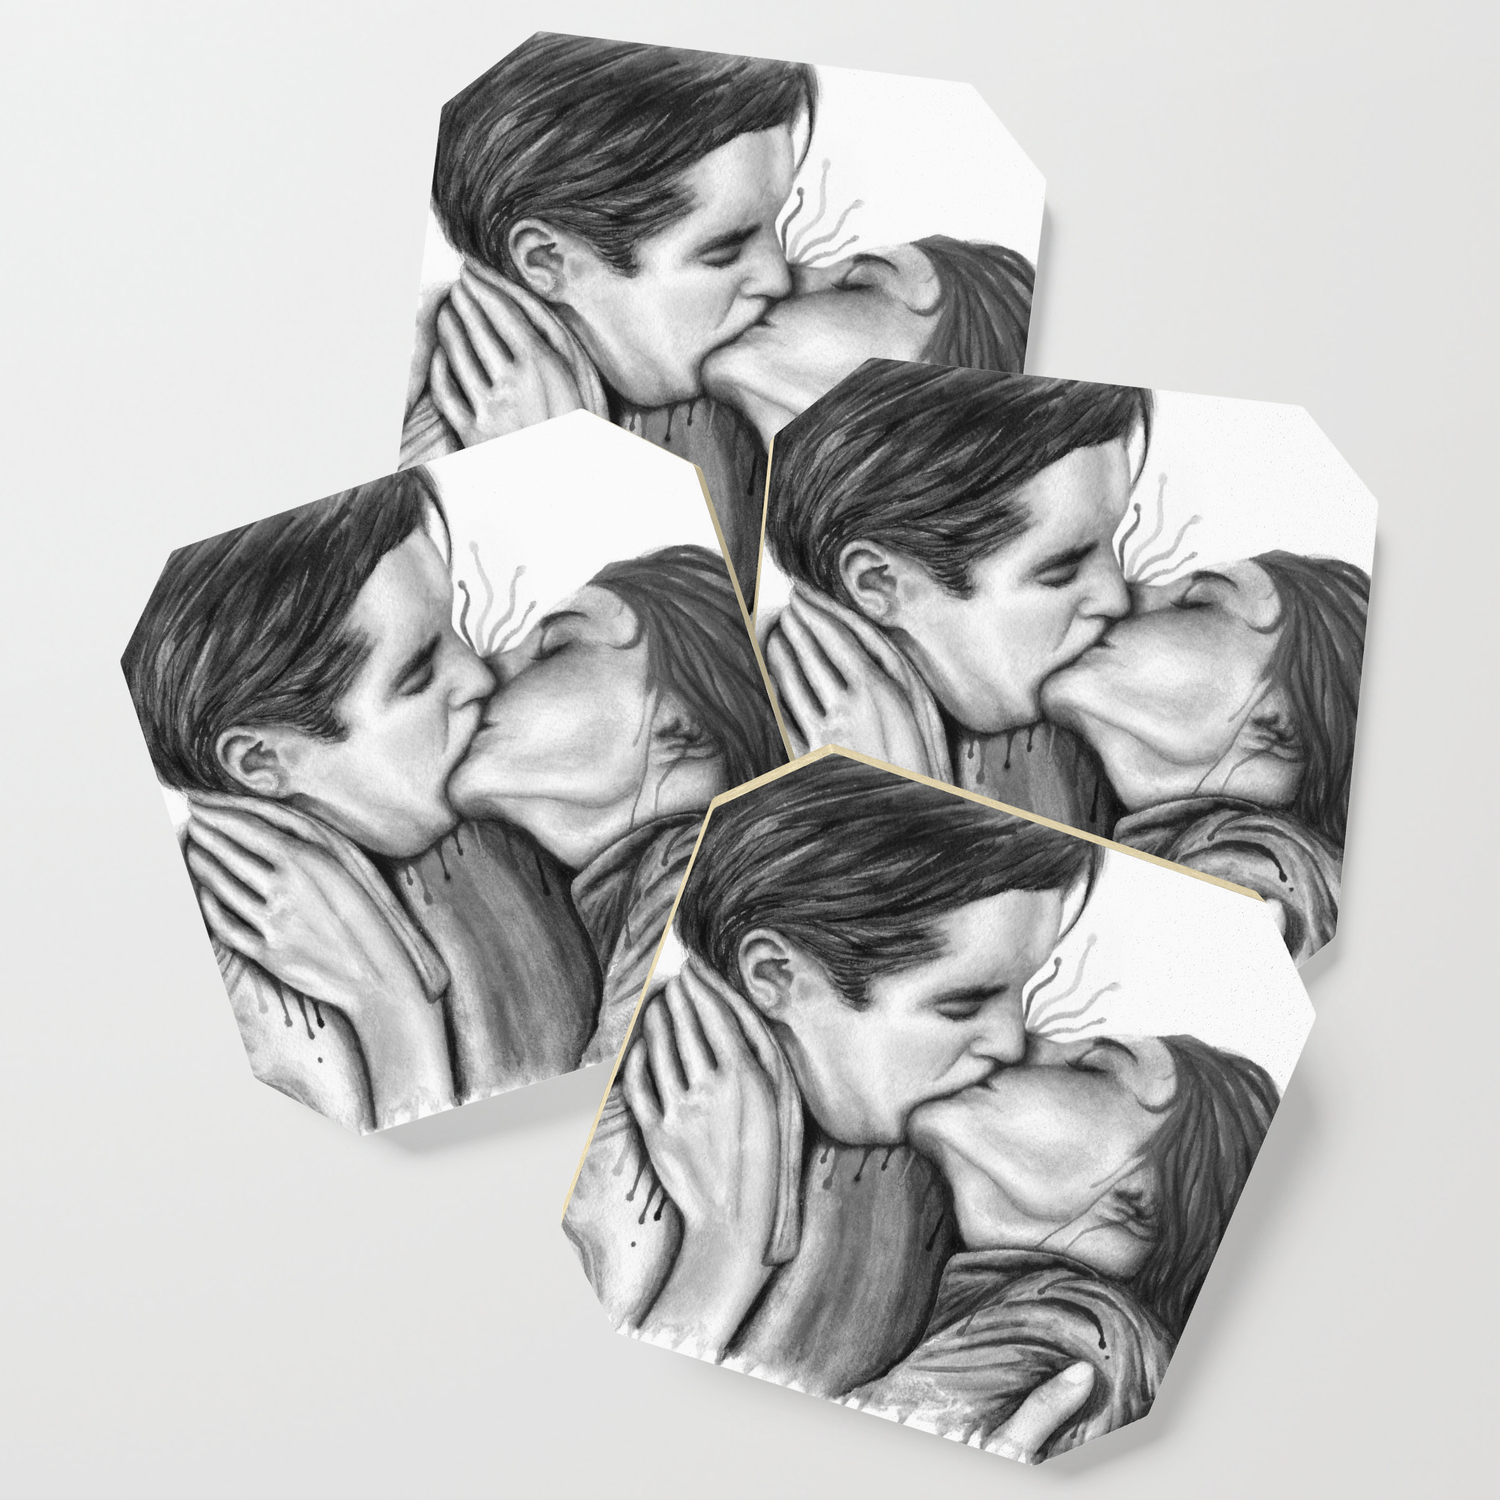 Cinema kiss blackwhite love art illustration romance lovers relationship couple drawing kiss coaster